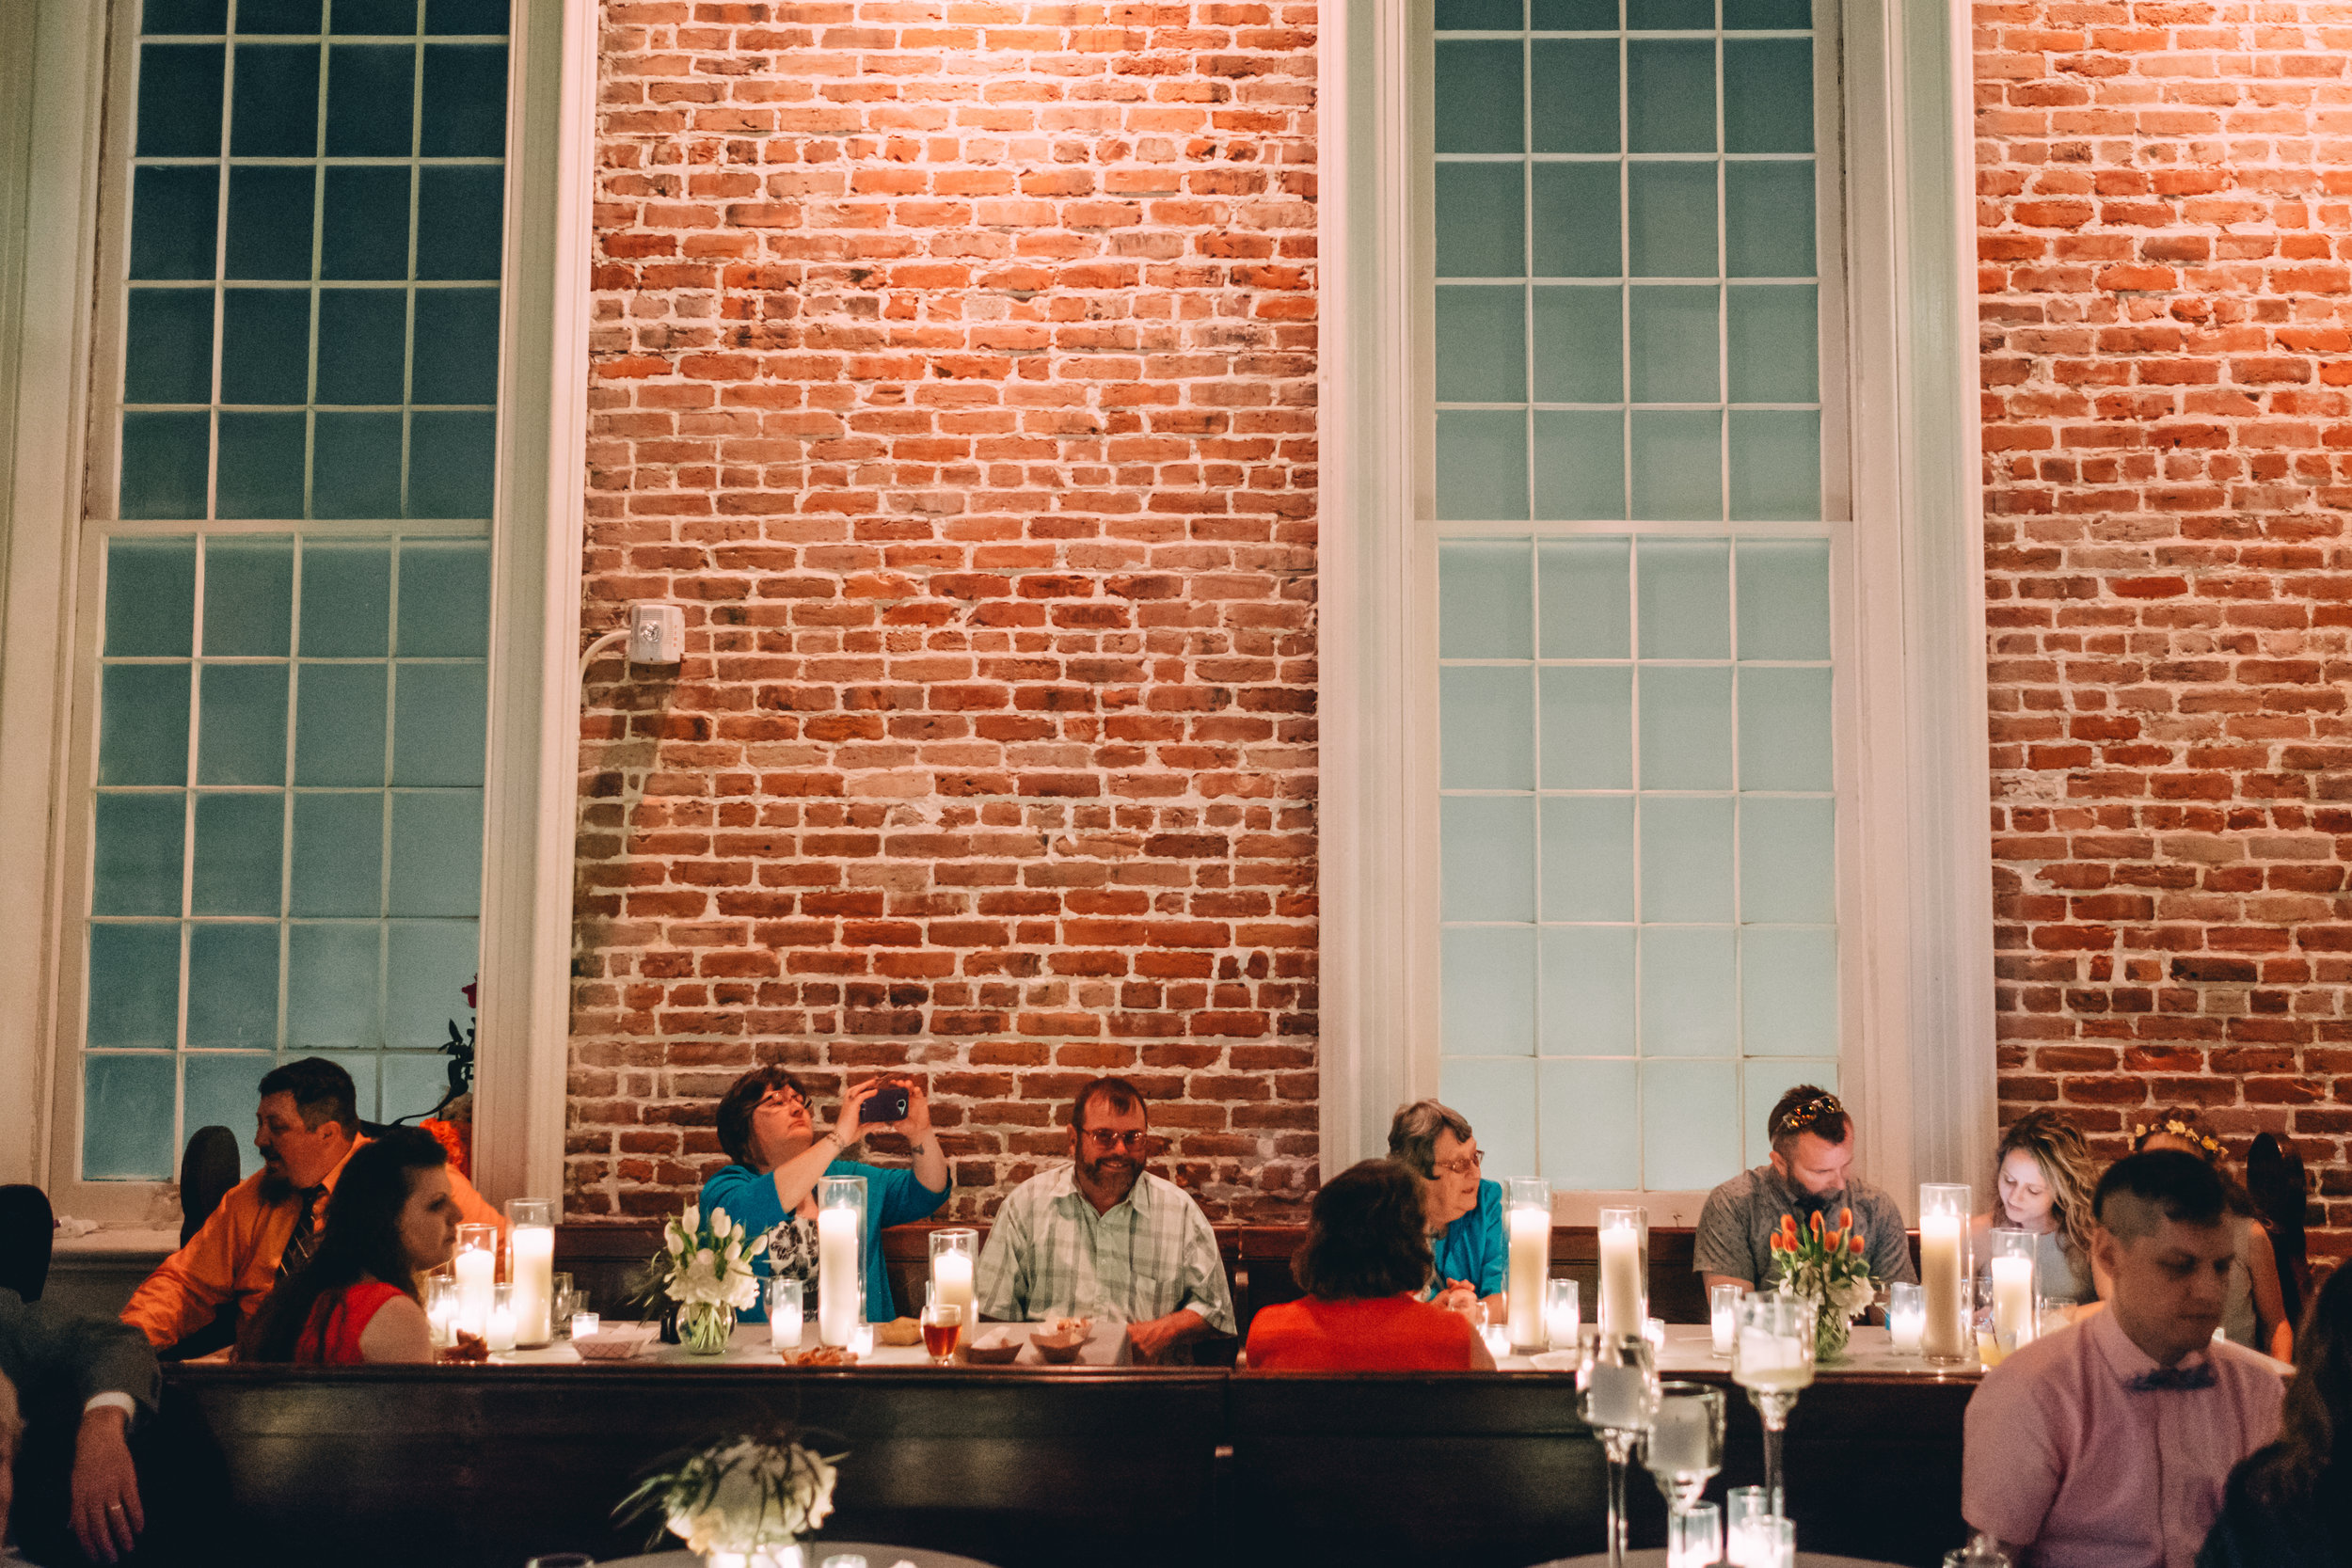 Guests eating together at a family-style setup for New Orleans Catering by My House Social at Felicity Church